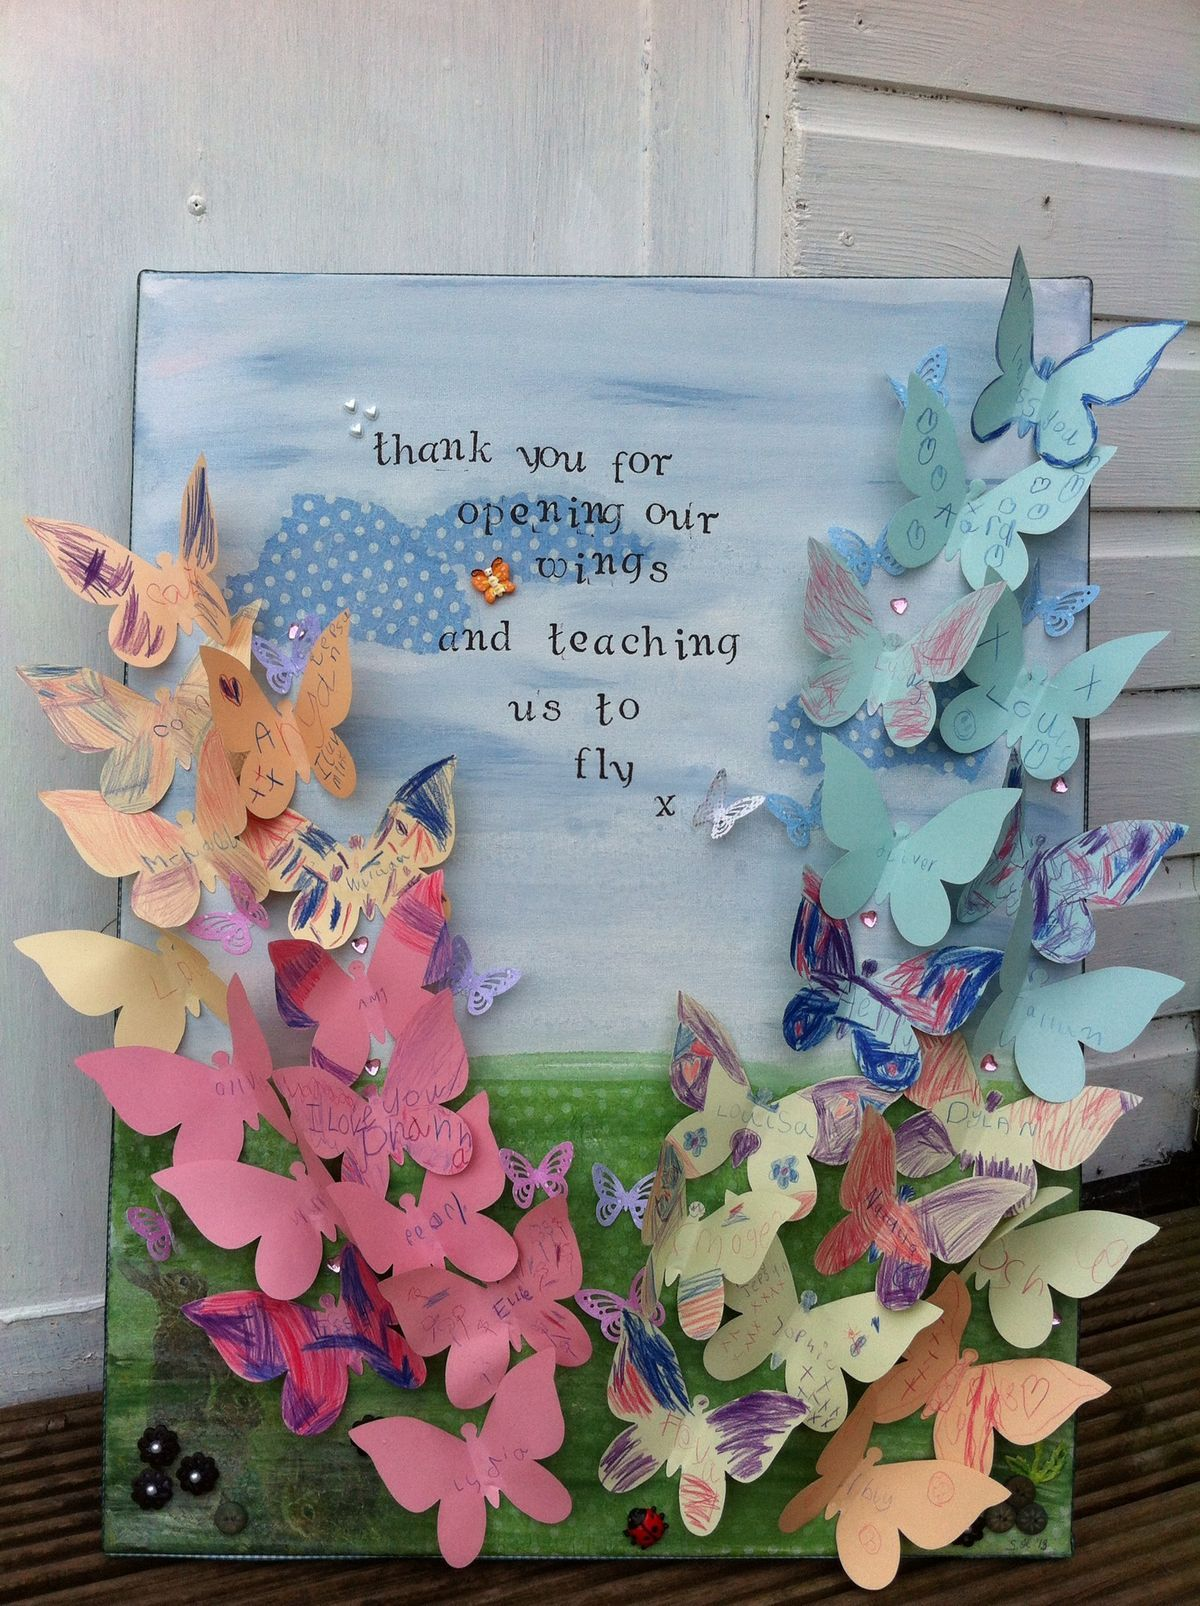 Pin by nicole crosier on Mother's Day | Teacher gifts ...